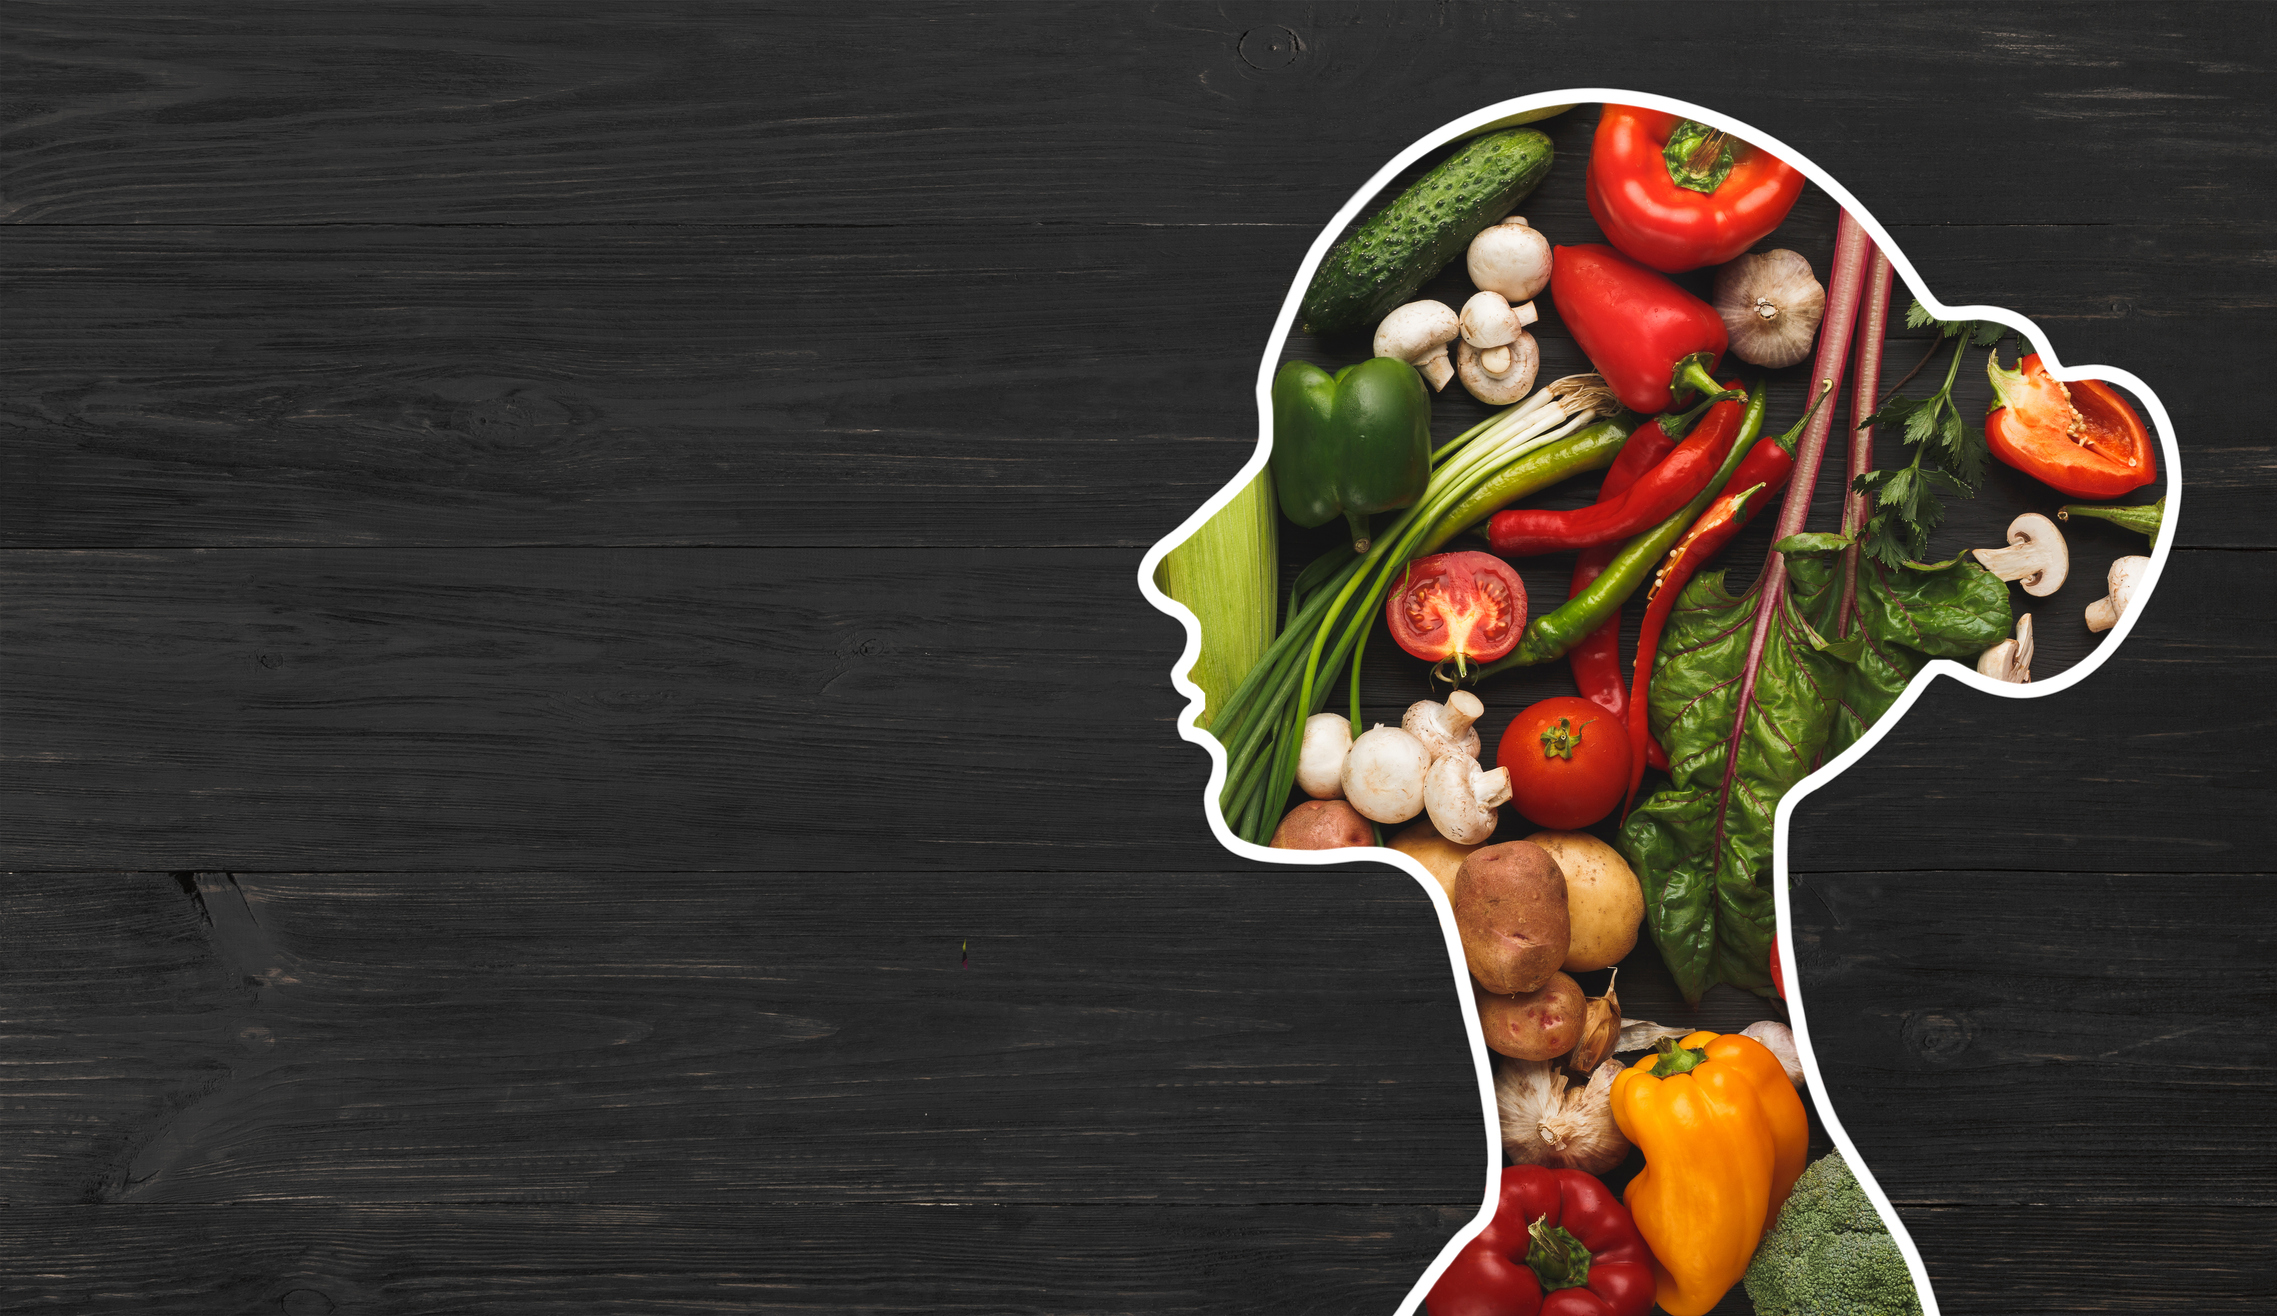 Nutrition and healthy food for brain health and function